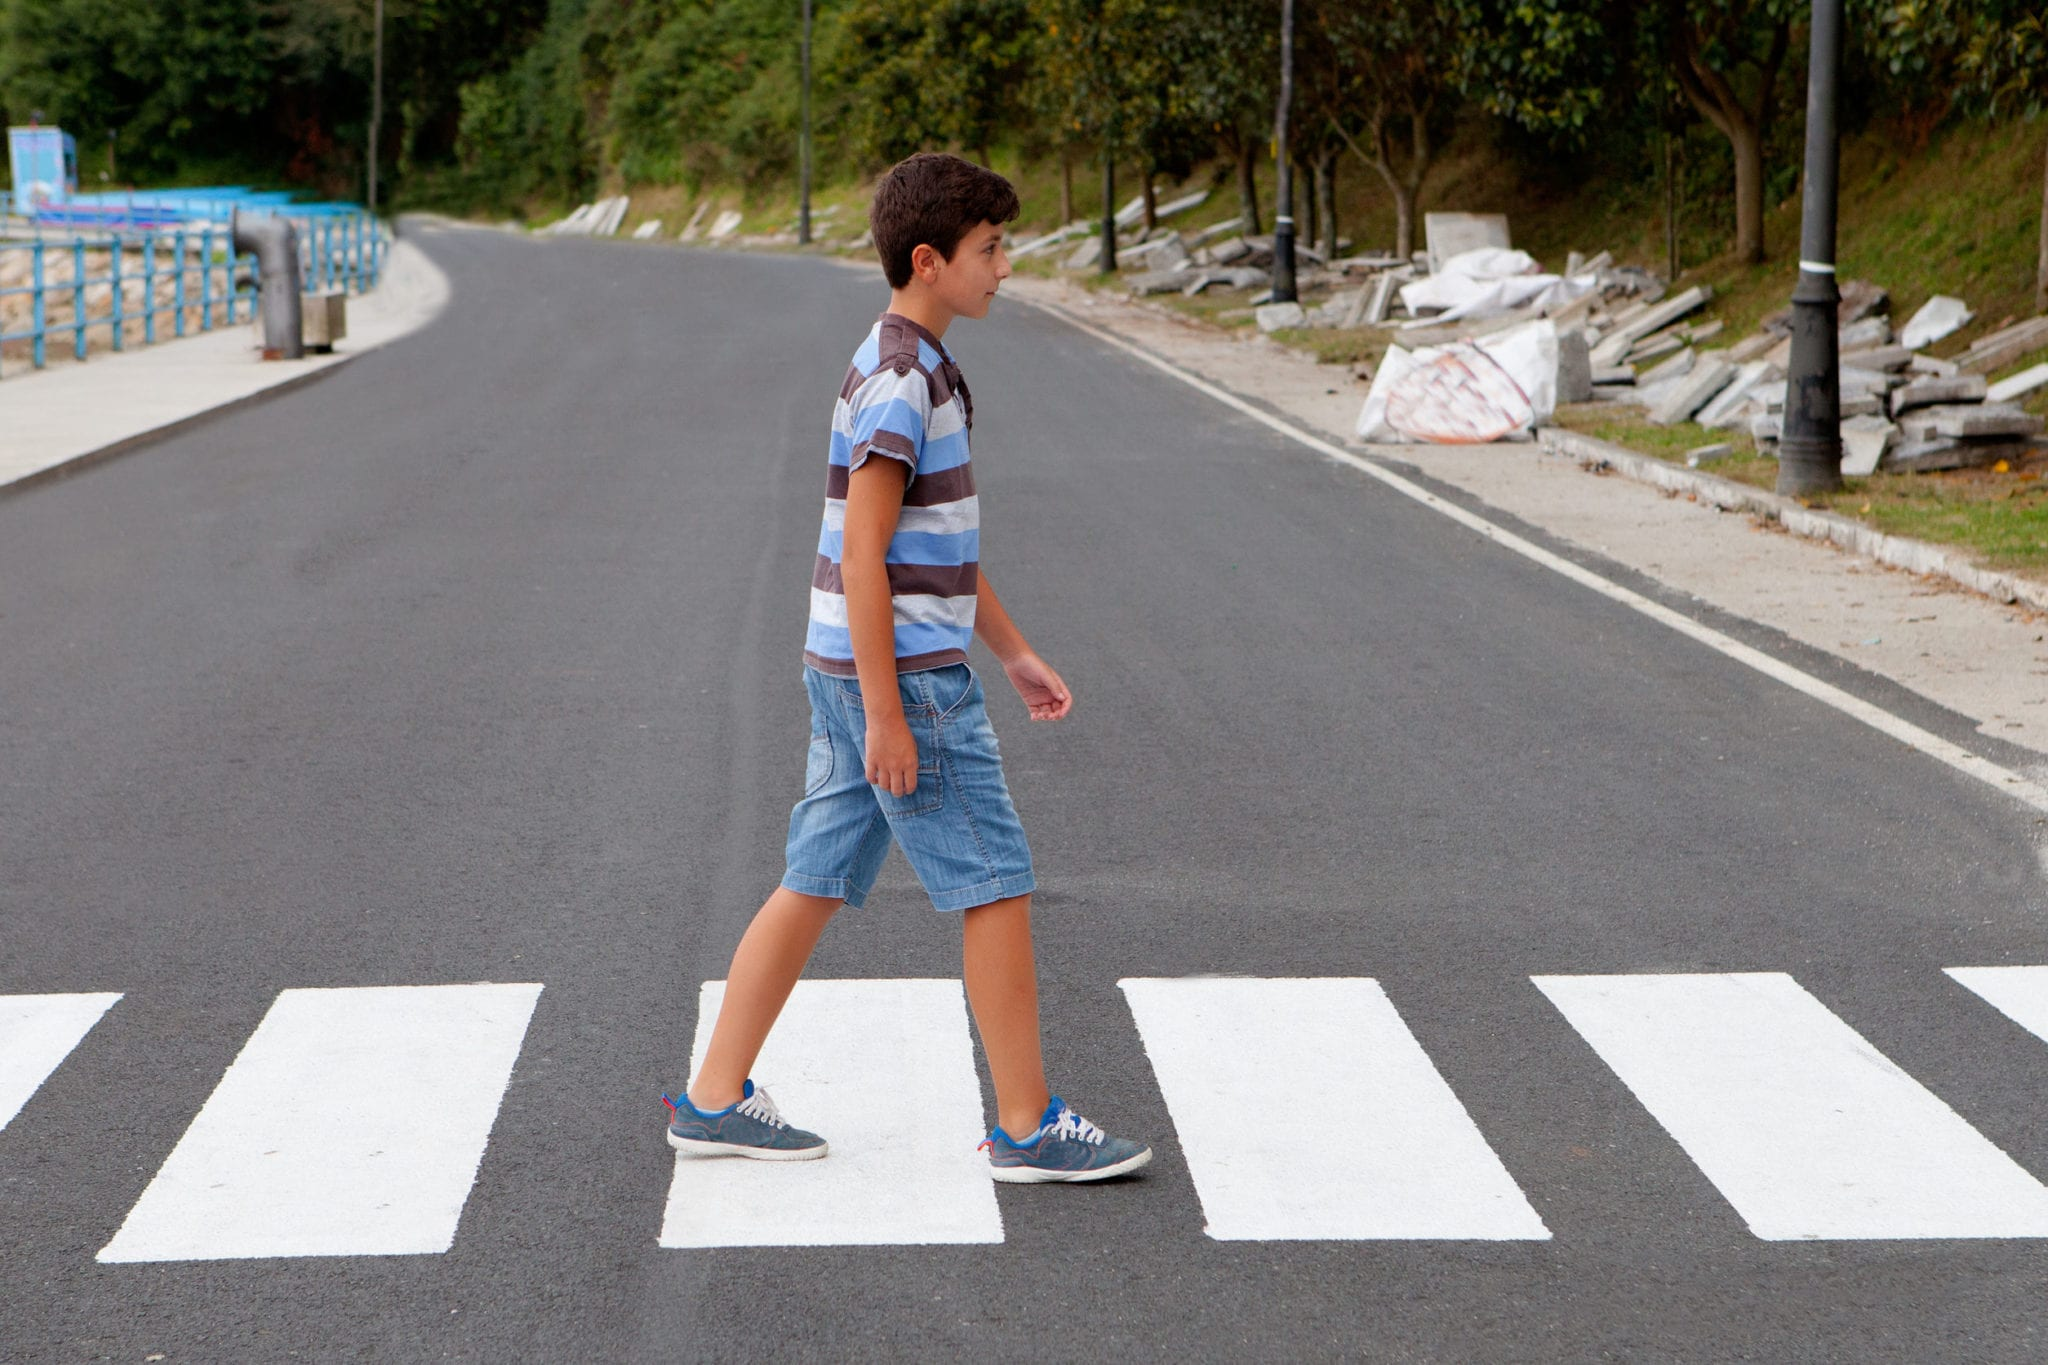 Fort Lauderdale Pedestrian Accident Lawyer